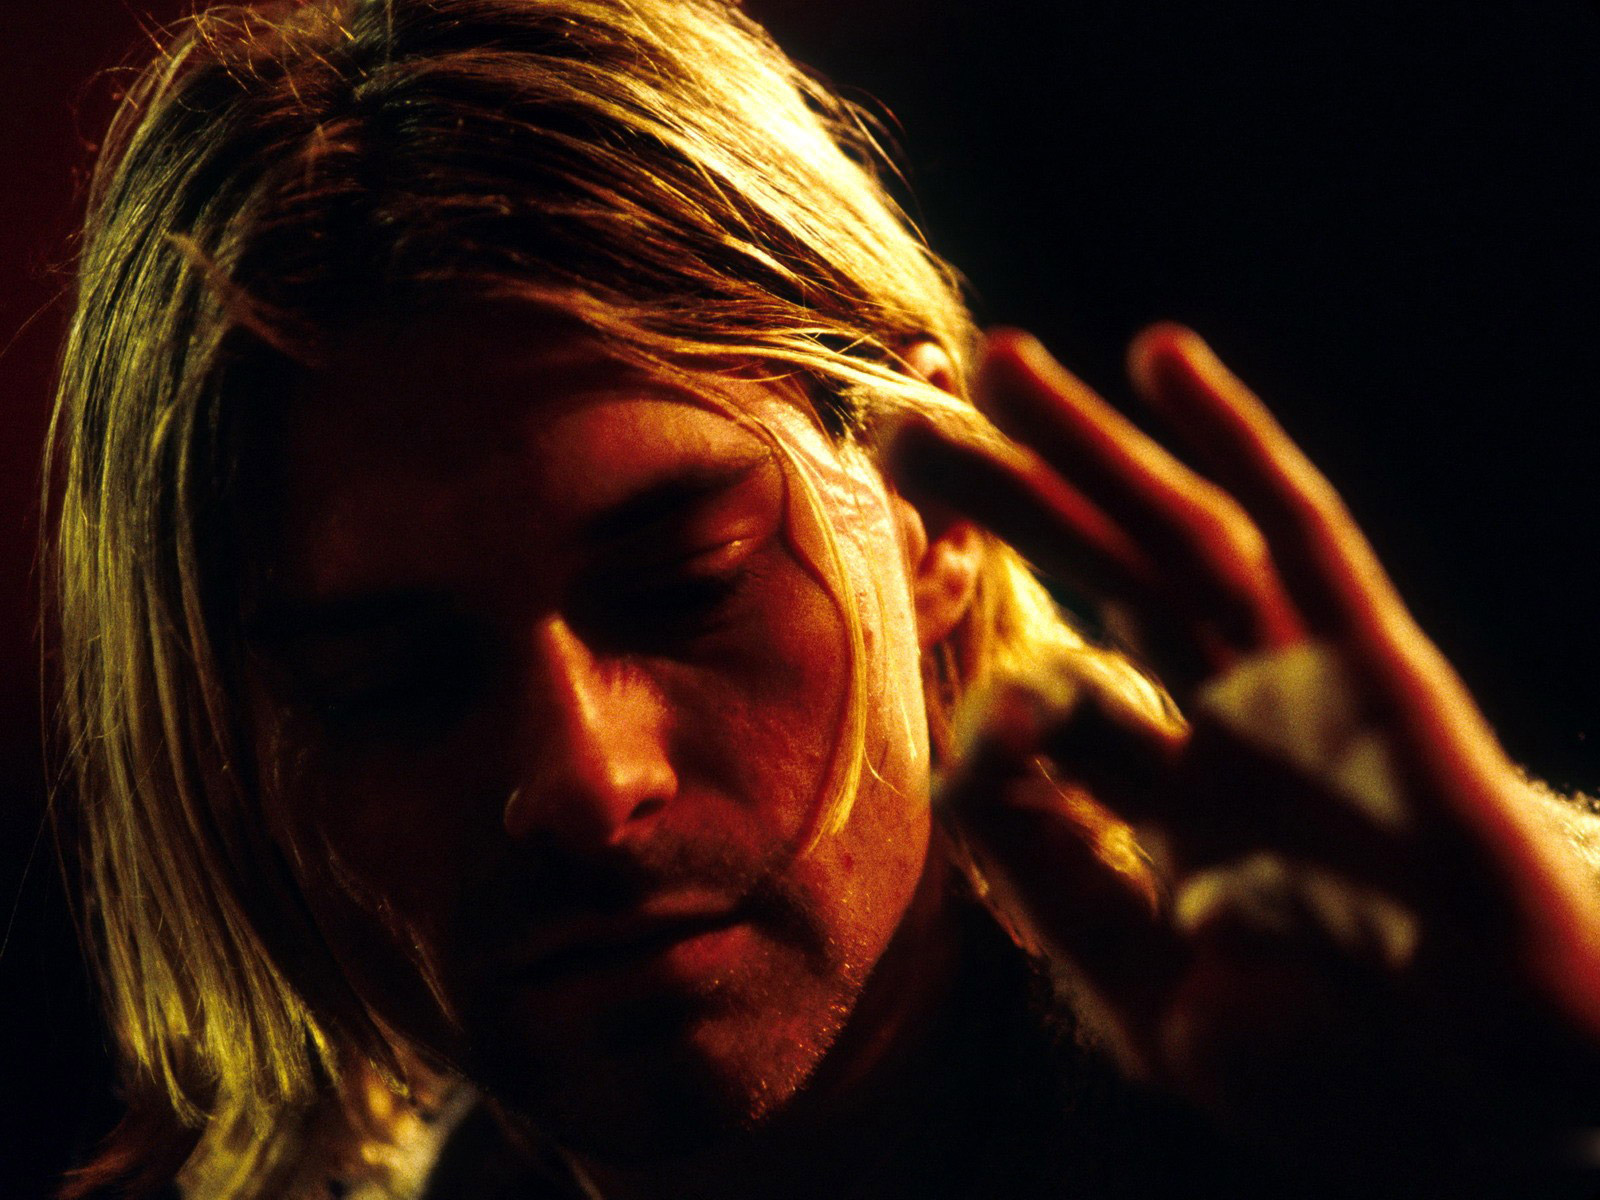 123 Rock | Nirvana | Music | Videos, Album infos, Clip, Live, Photos, Informations, Articles